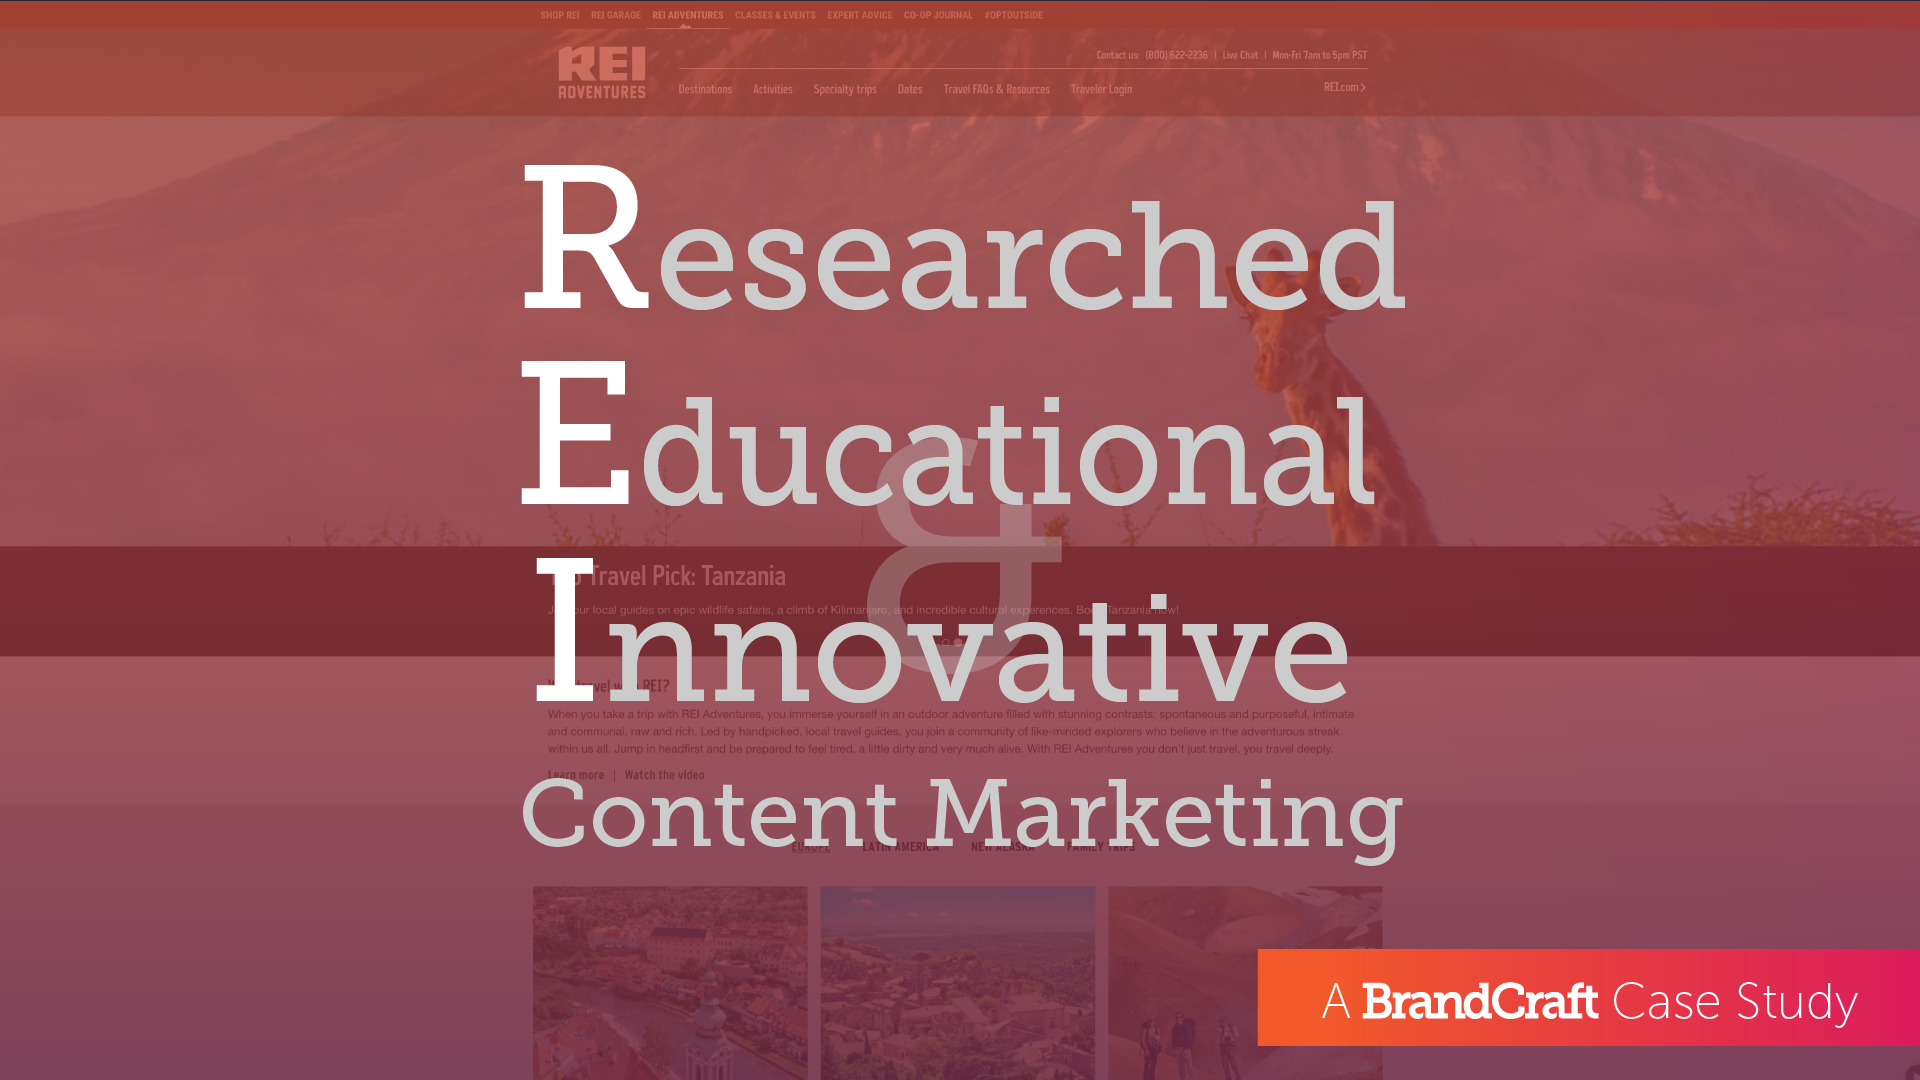 Researched Educational and Innovative Content Marketing with REI Hero